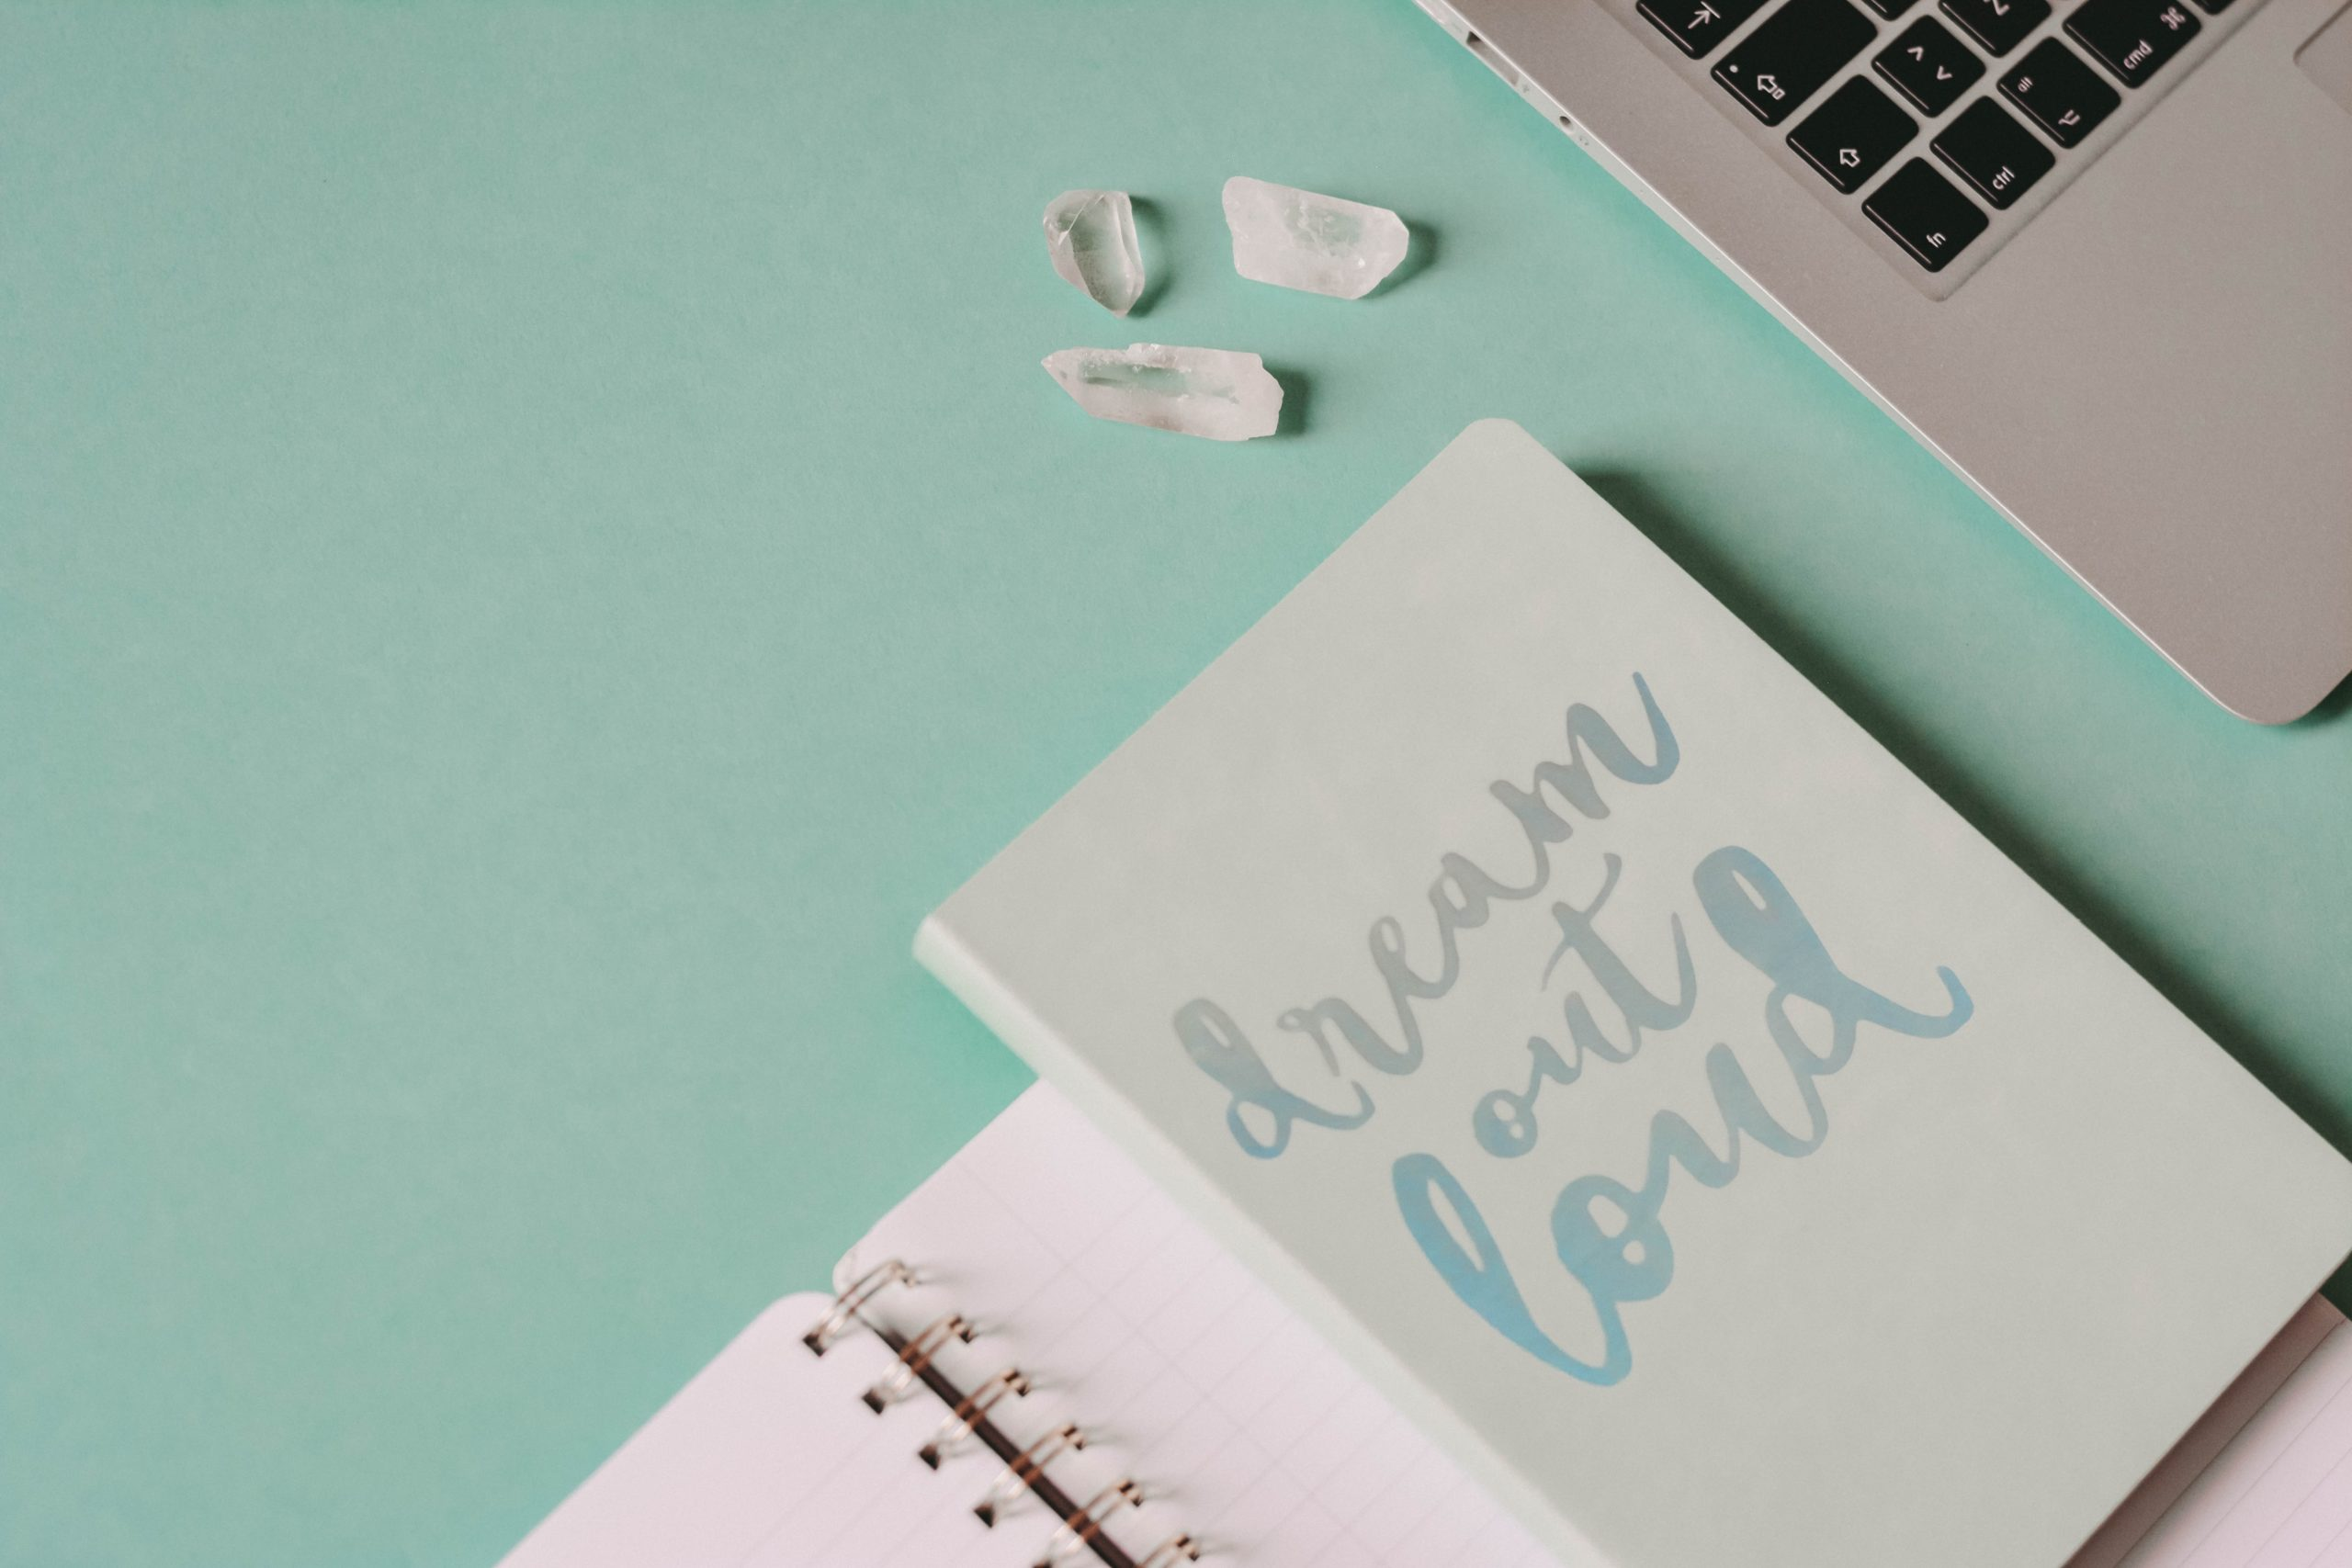 26 Best Lifestyle Blogs You Should Follow in 2021